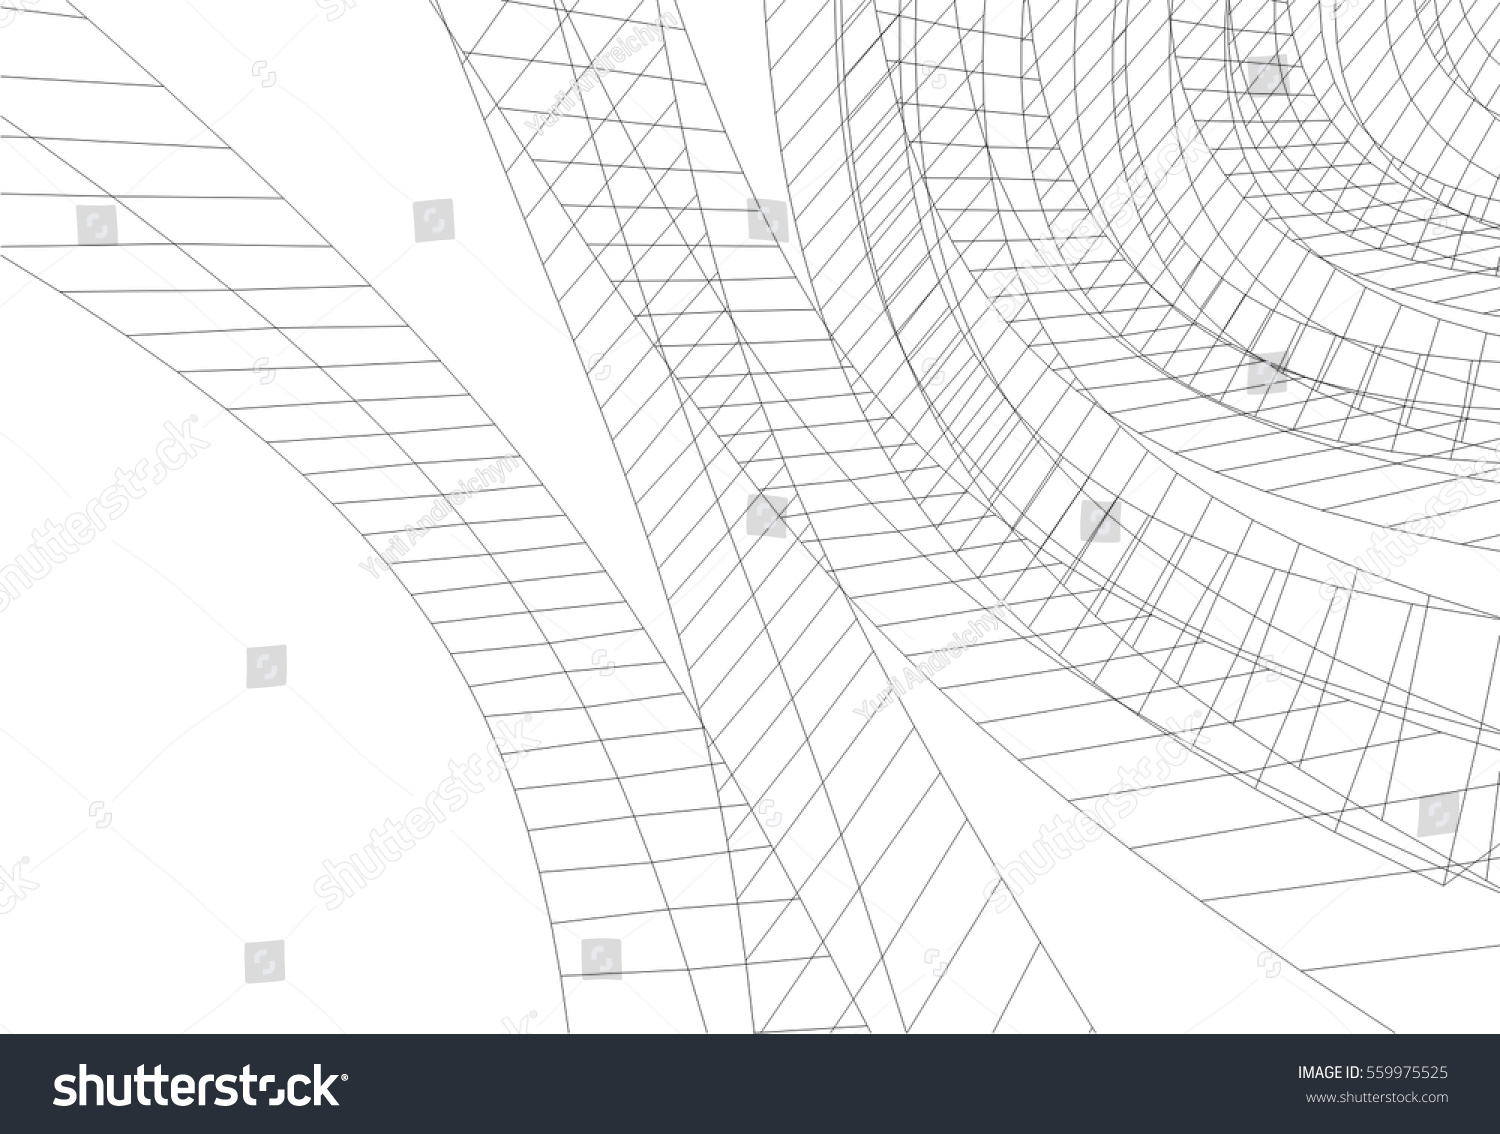 3d abstract architectural design - photo #14